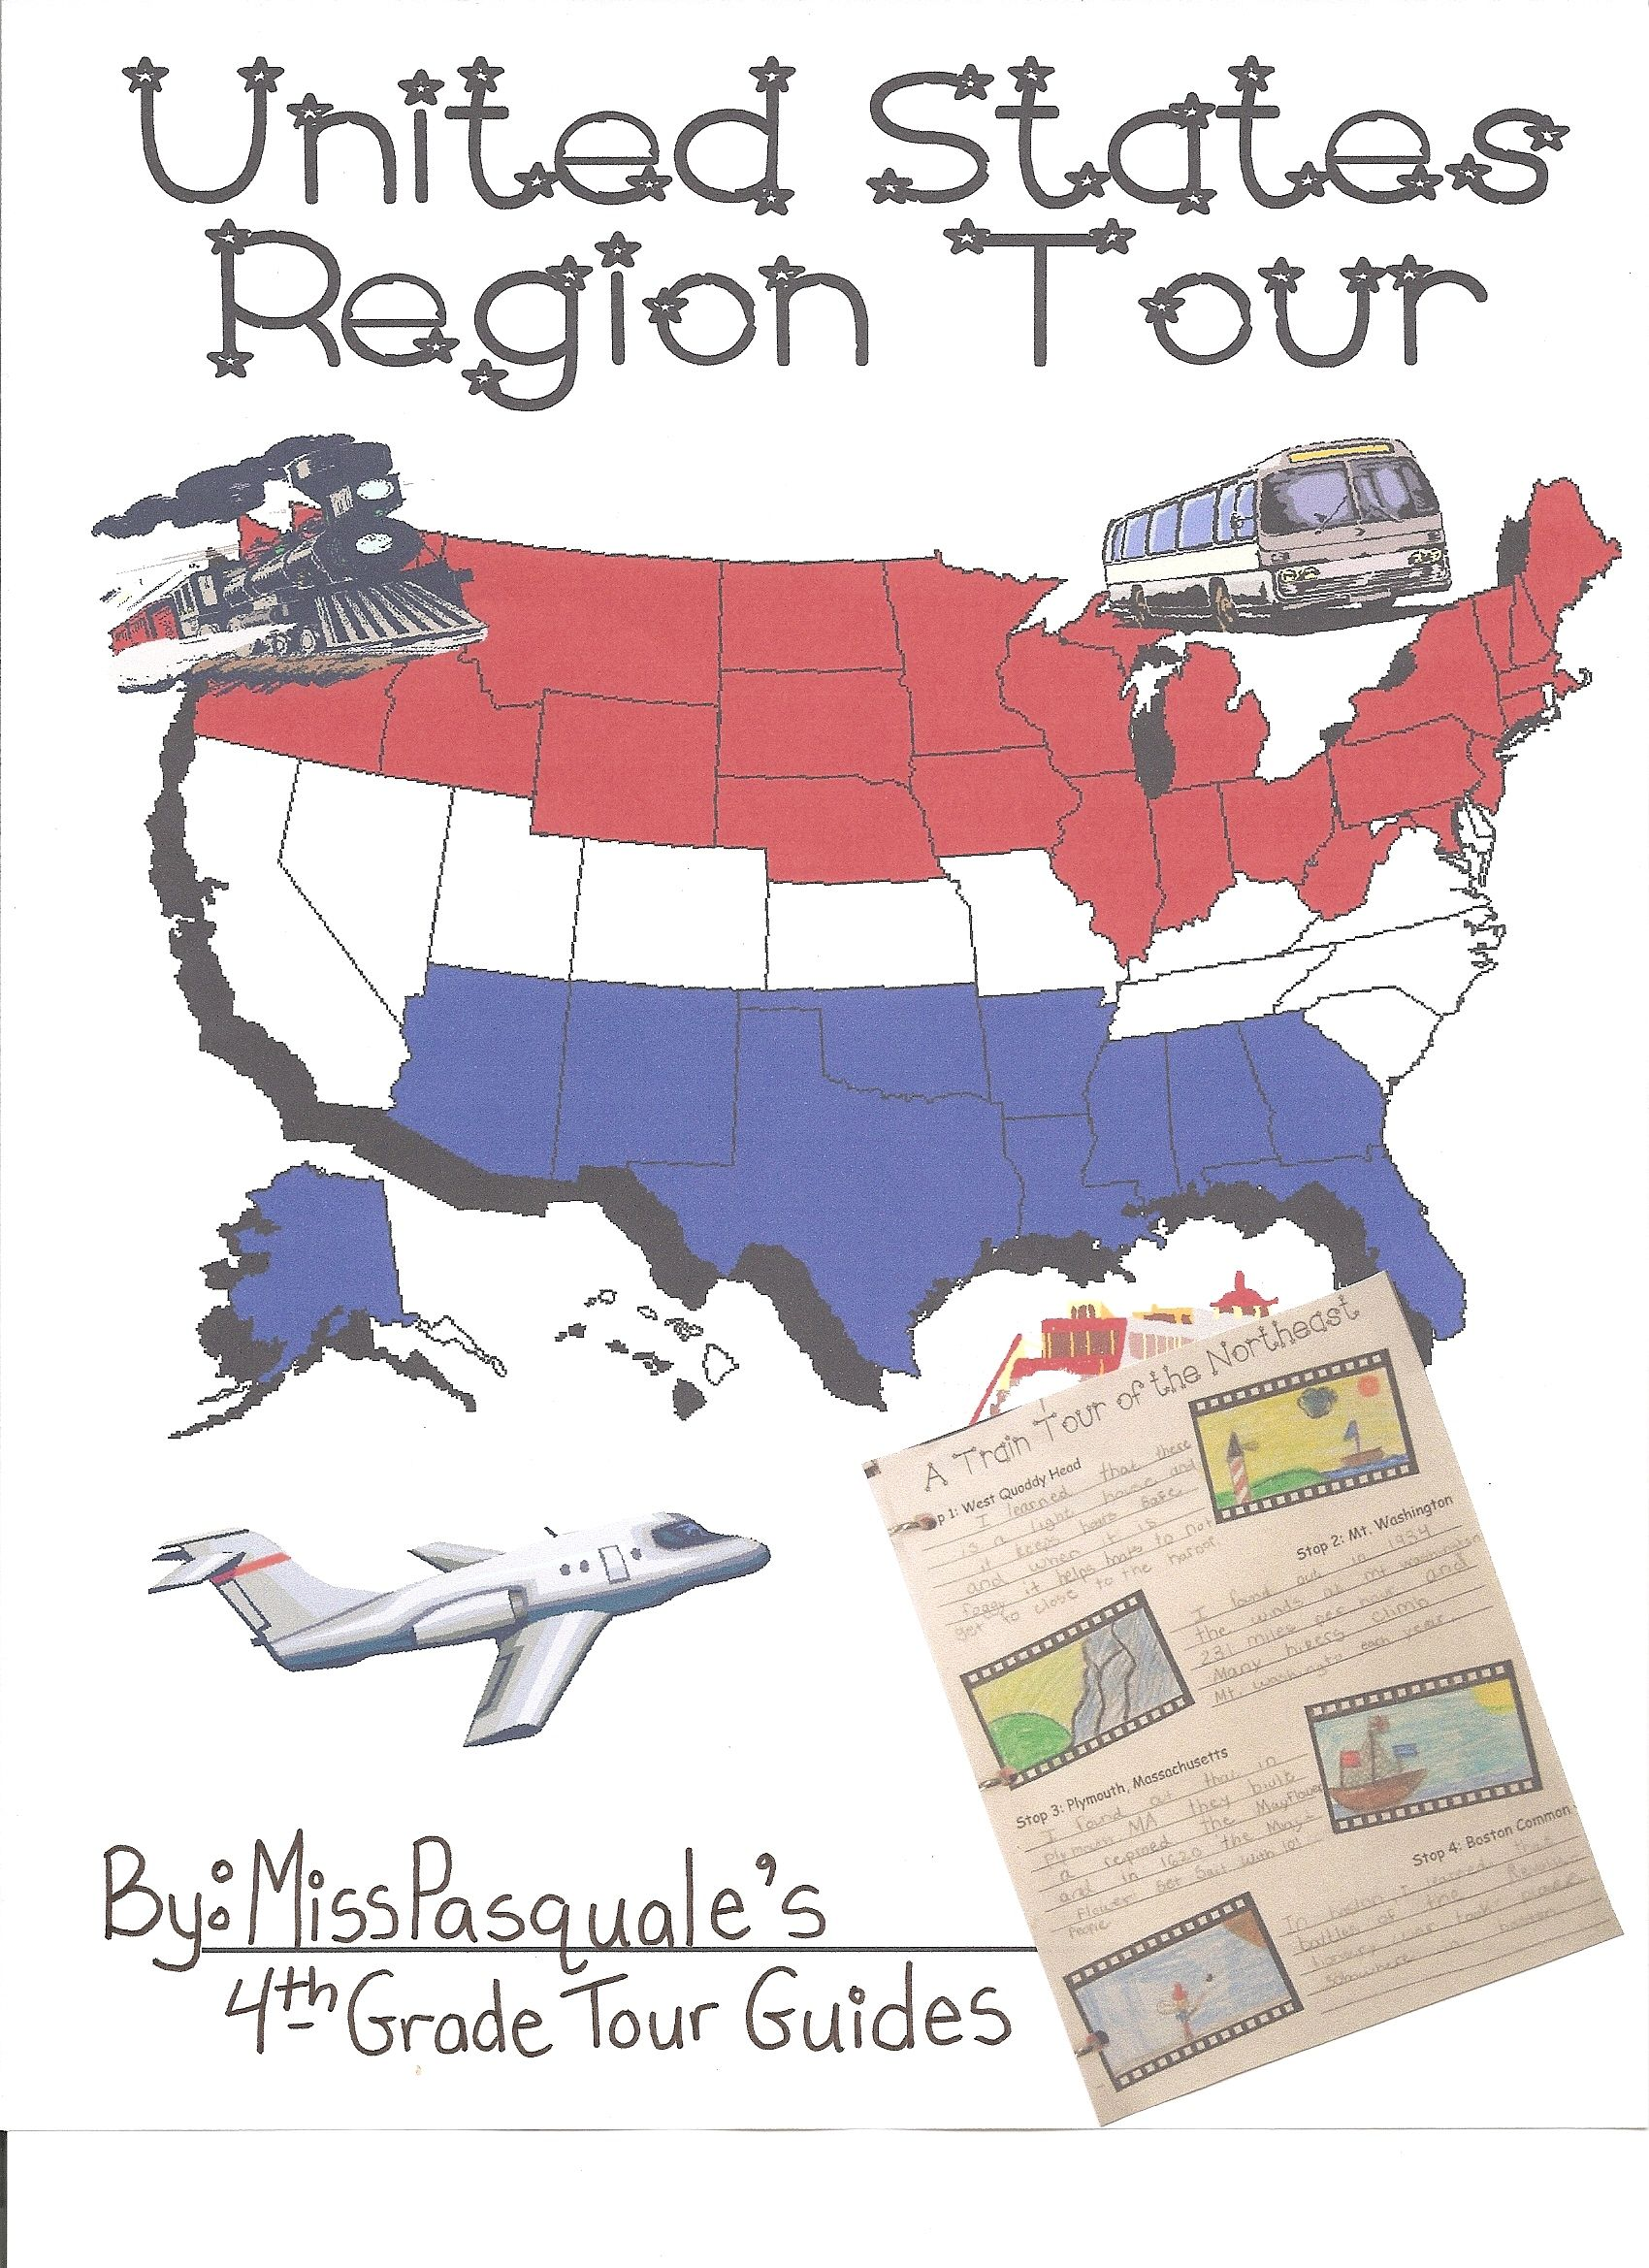 Webquest Tour The Regions Of The United States Created With Zunal Webquest Maker